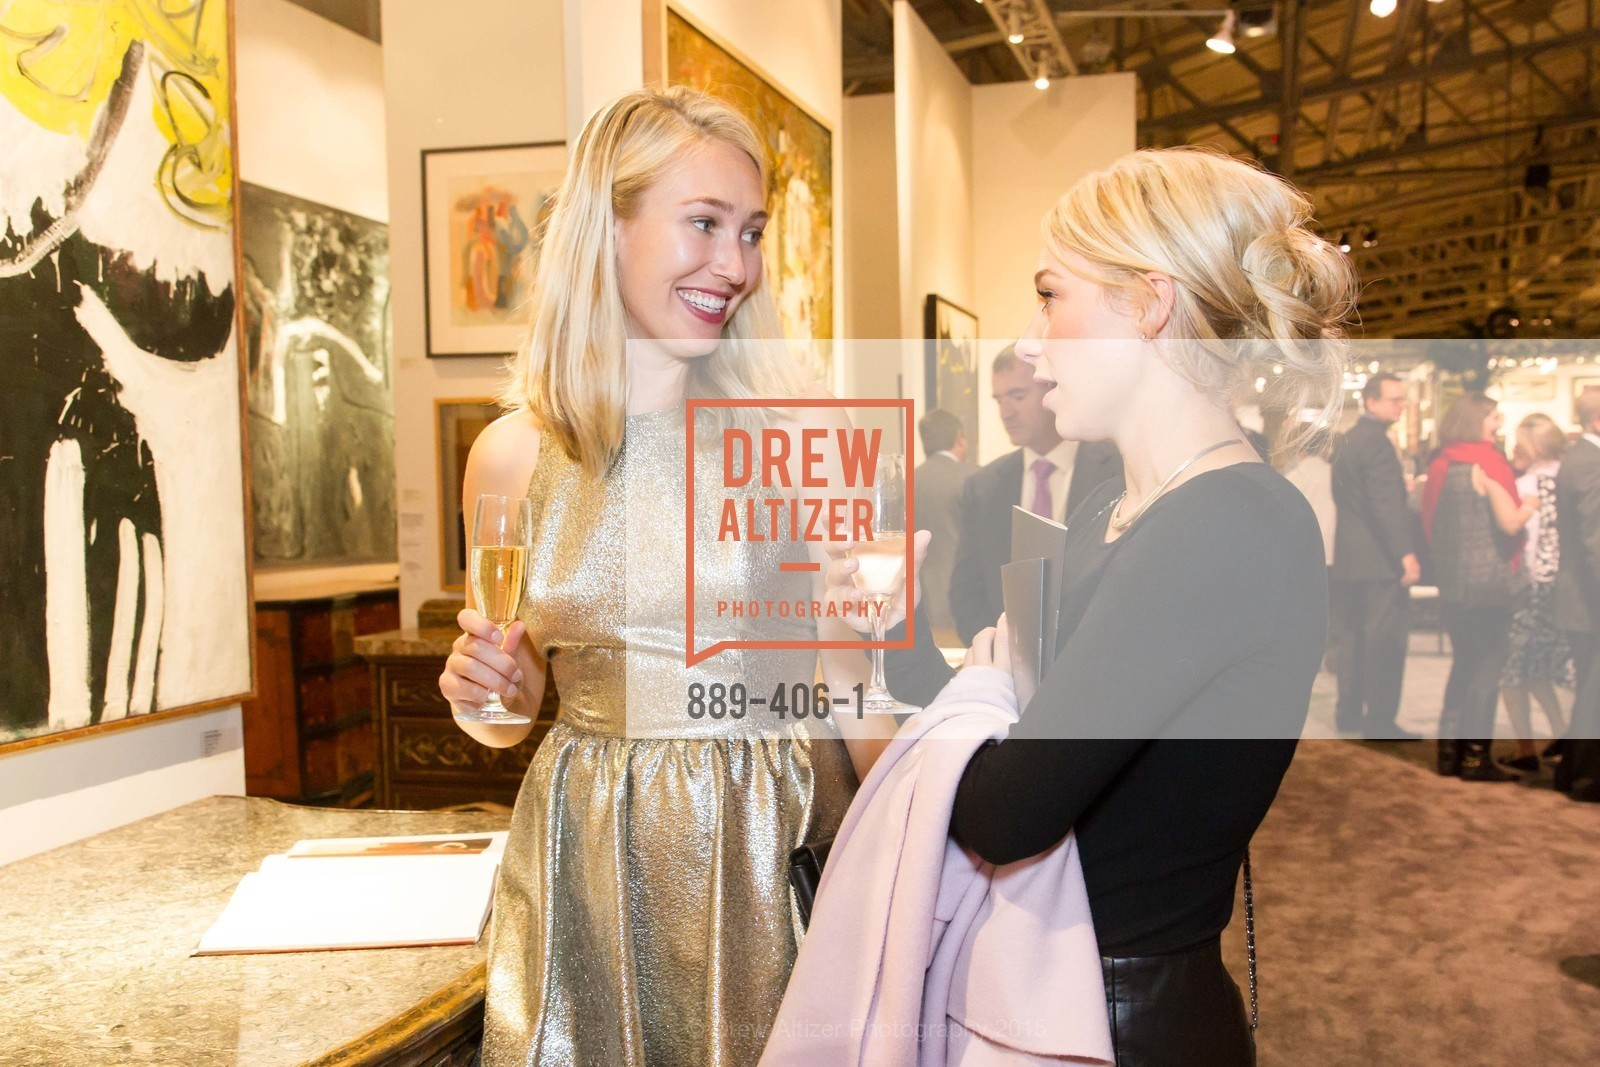 Hilary Helfrich, Ally Fleming, The San Francisco Fall Antiques Show, Festival Pavilion, Fort Mason, October 21st, 2015,Drew Altizer, Drew Altizer Photography, full-service event agency, private events, San Francisco photographer, photographer California